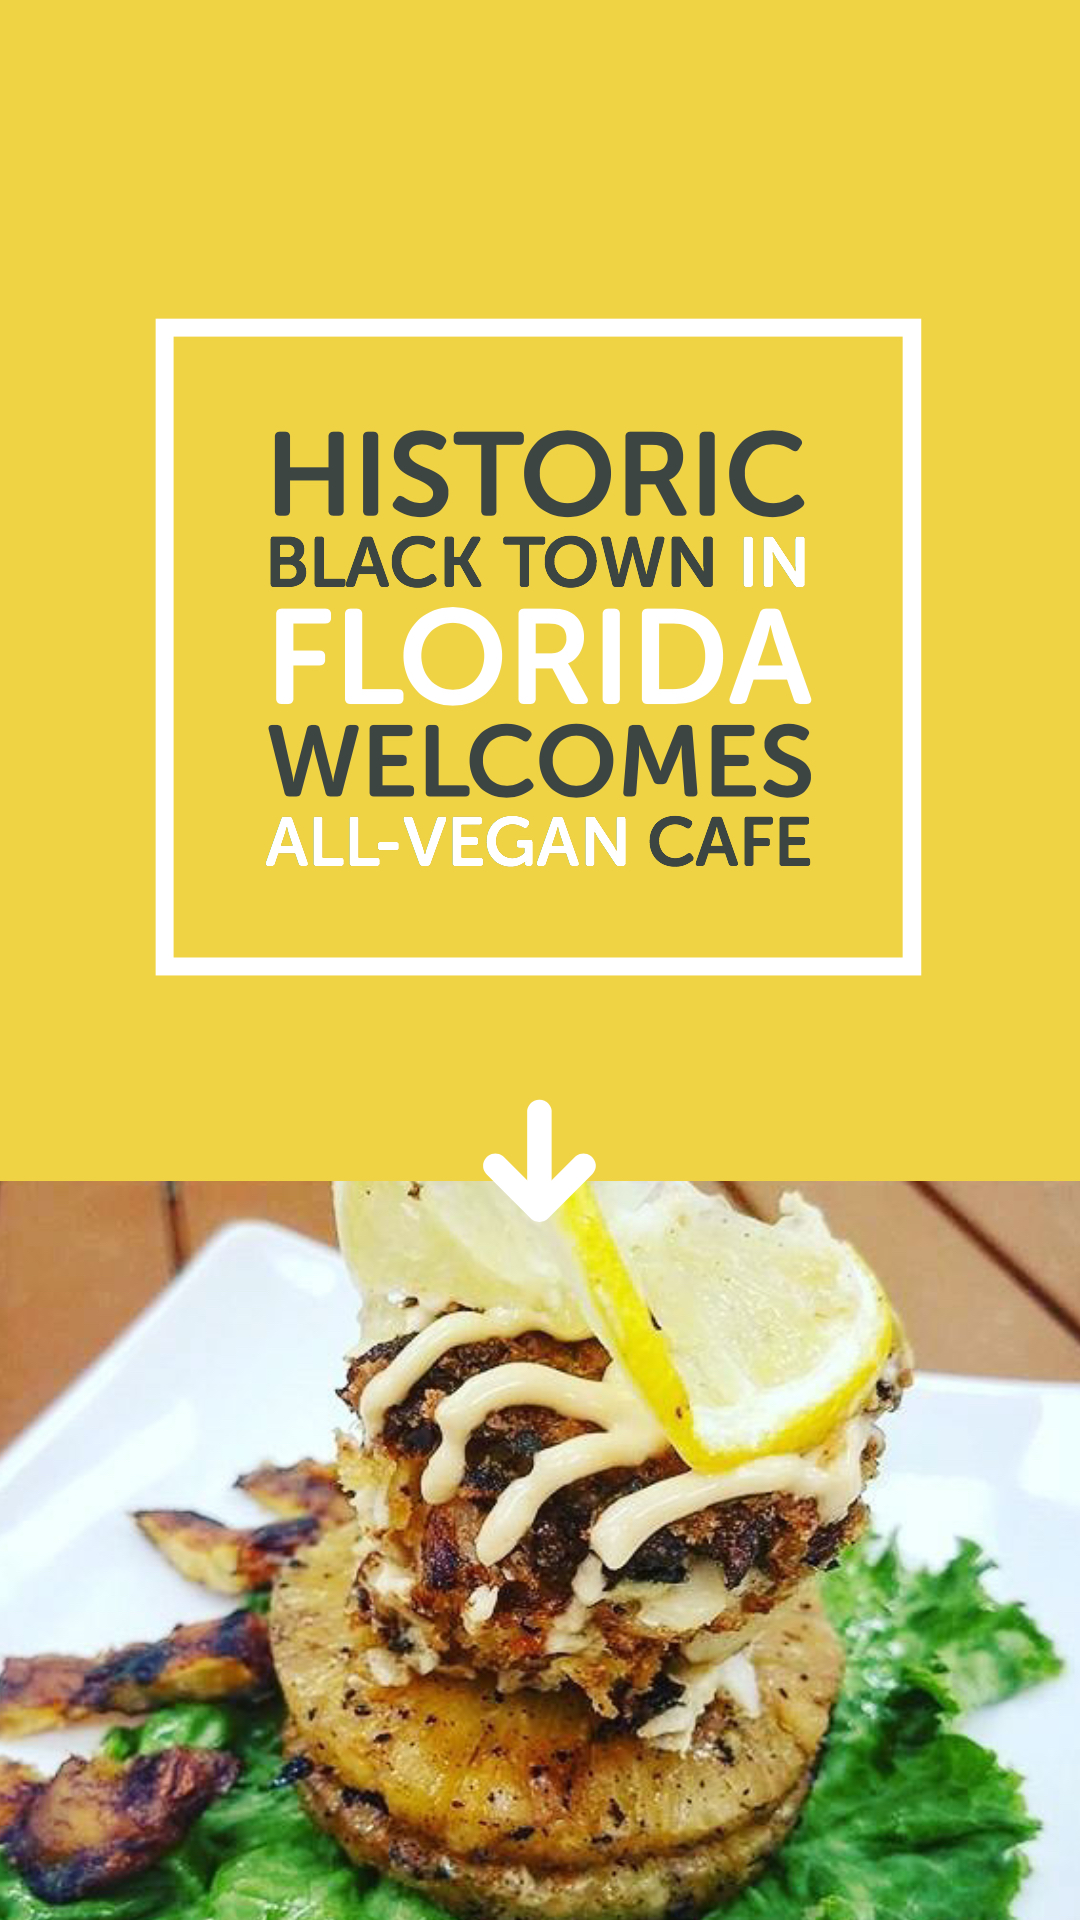 Historic Black Town in Florida Welcomes All-Vegan Cafe